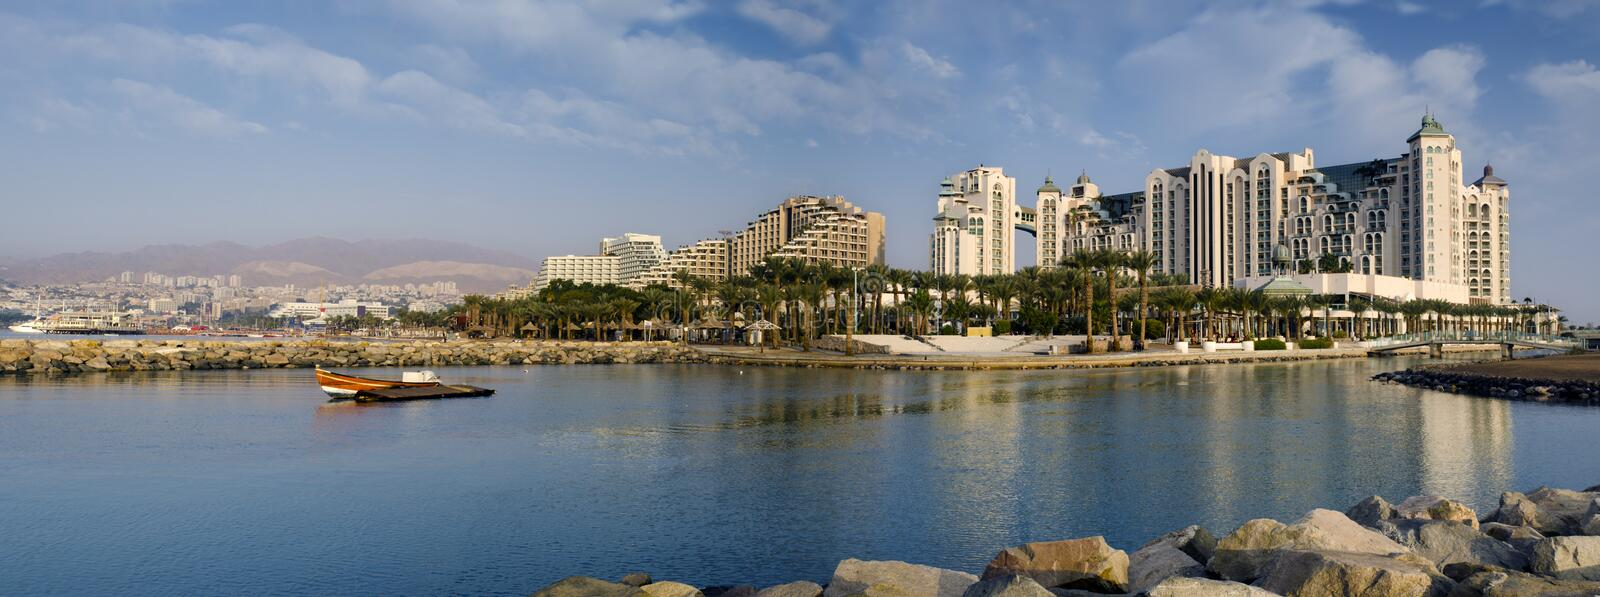 Panoramic view on marina in Eilat, Israel. Eilat is a popular resort and recreation Israeli town located on northern part of the Aqaba gulf, Red Sea royalty free stock photo